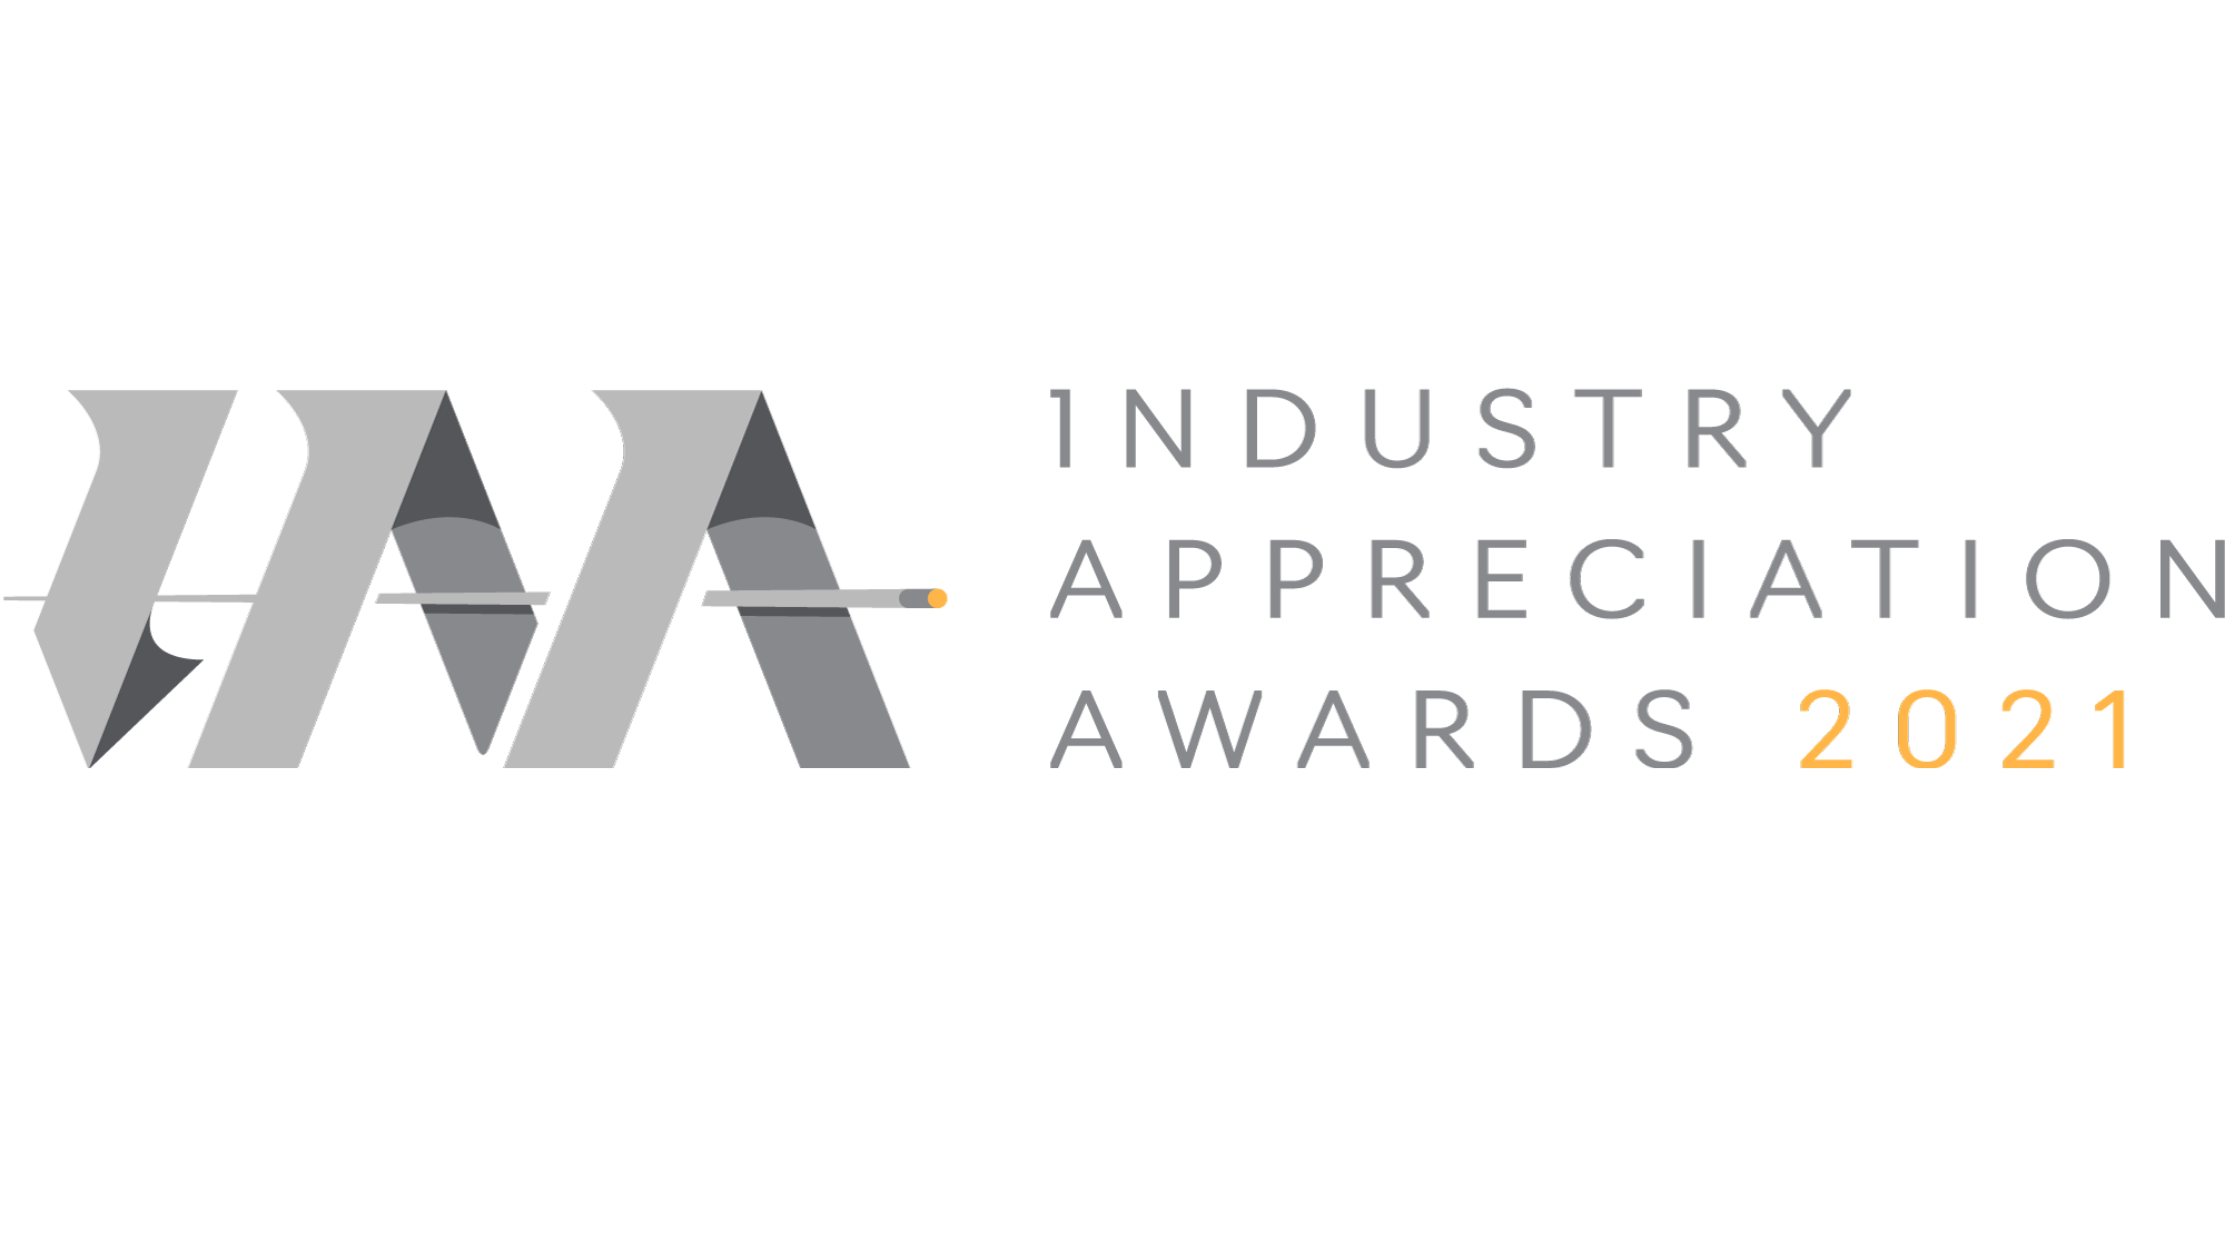 Industry Appreciation Awards to return bigger and better in 2021